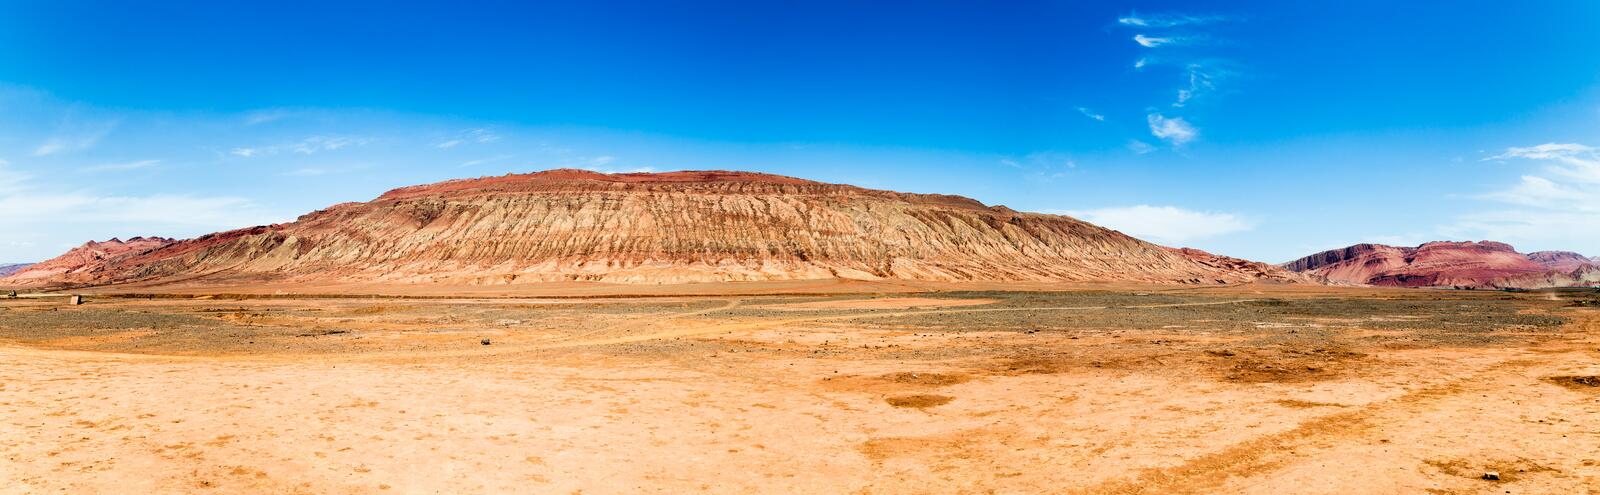 """Flaming mountains, Turpan, Xinjiang, China: these intense red mountains appear in the Chinese epic """"Journey to the west"""". Flaming mountains, Turpan royalty free stock images"""